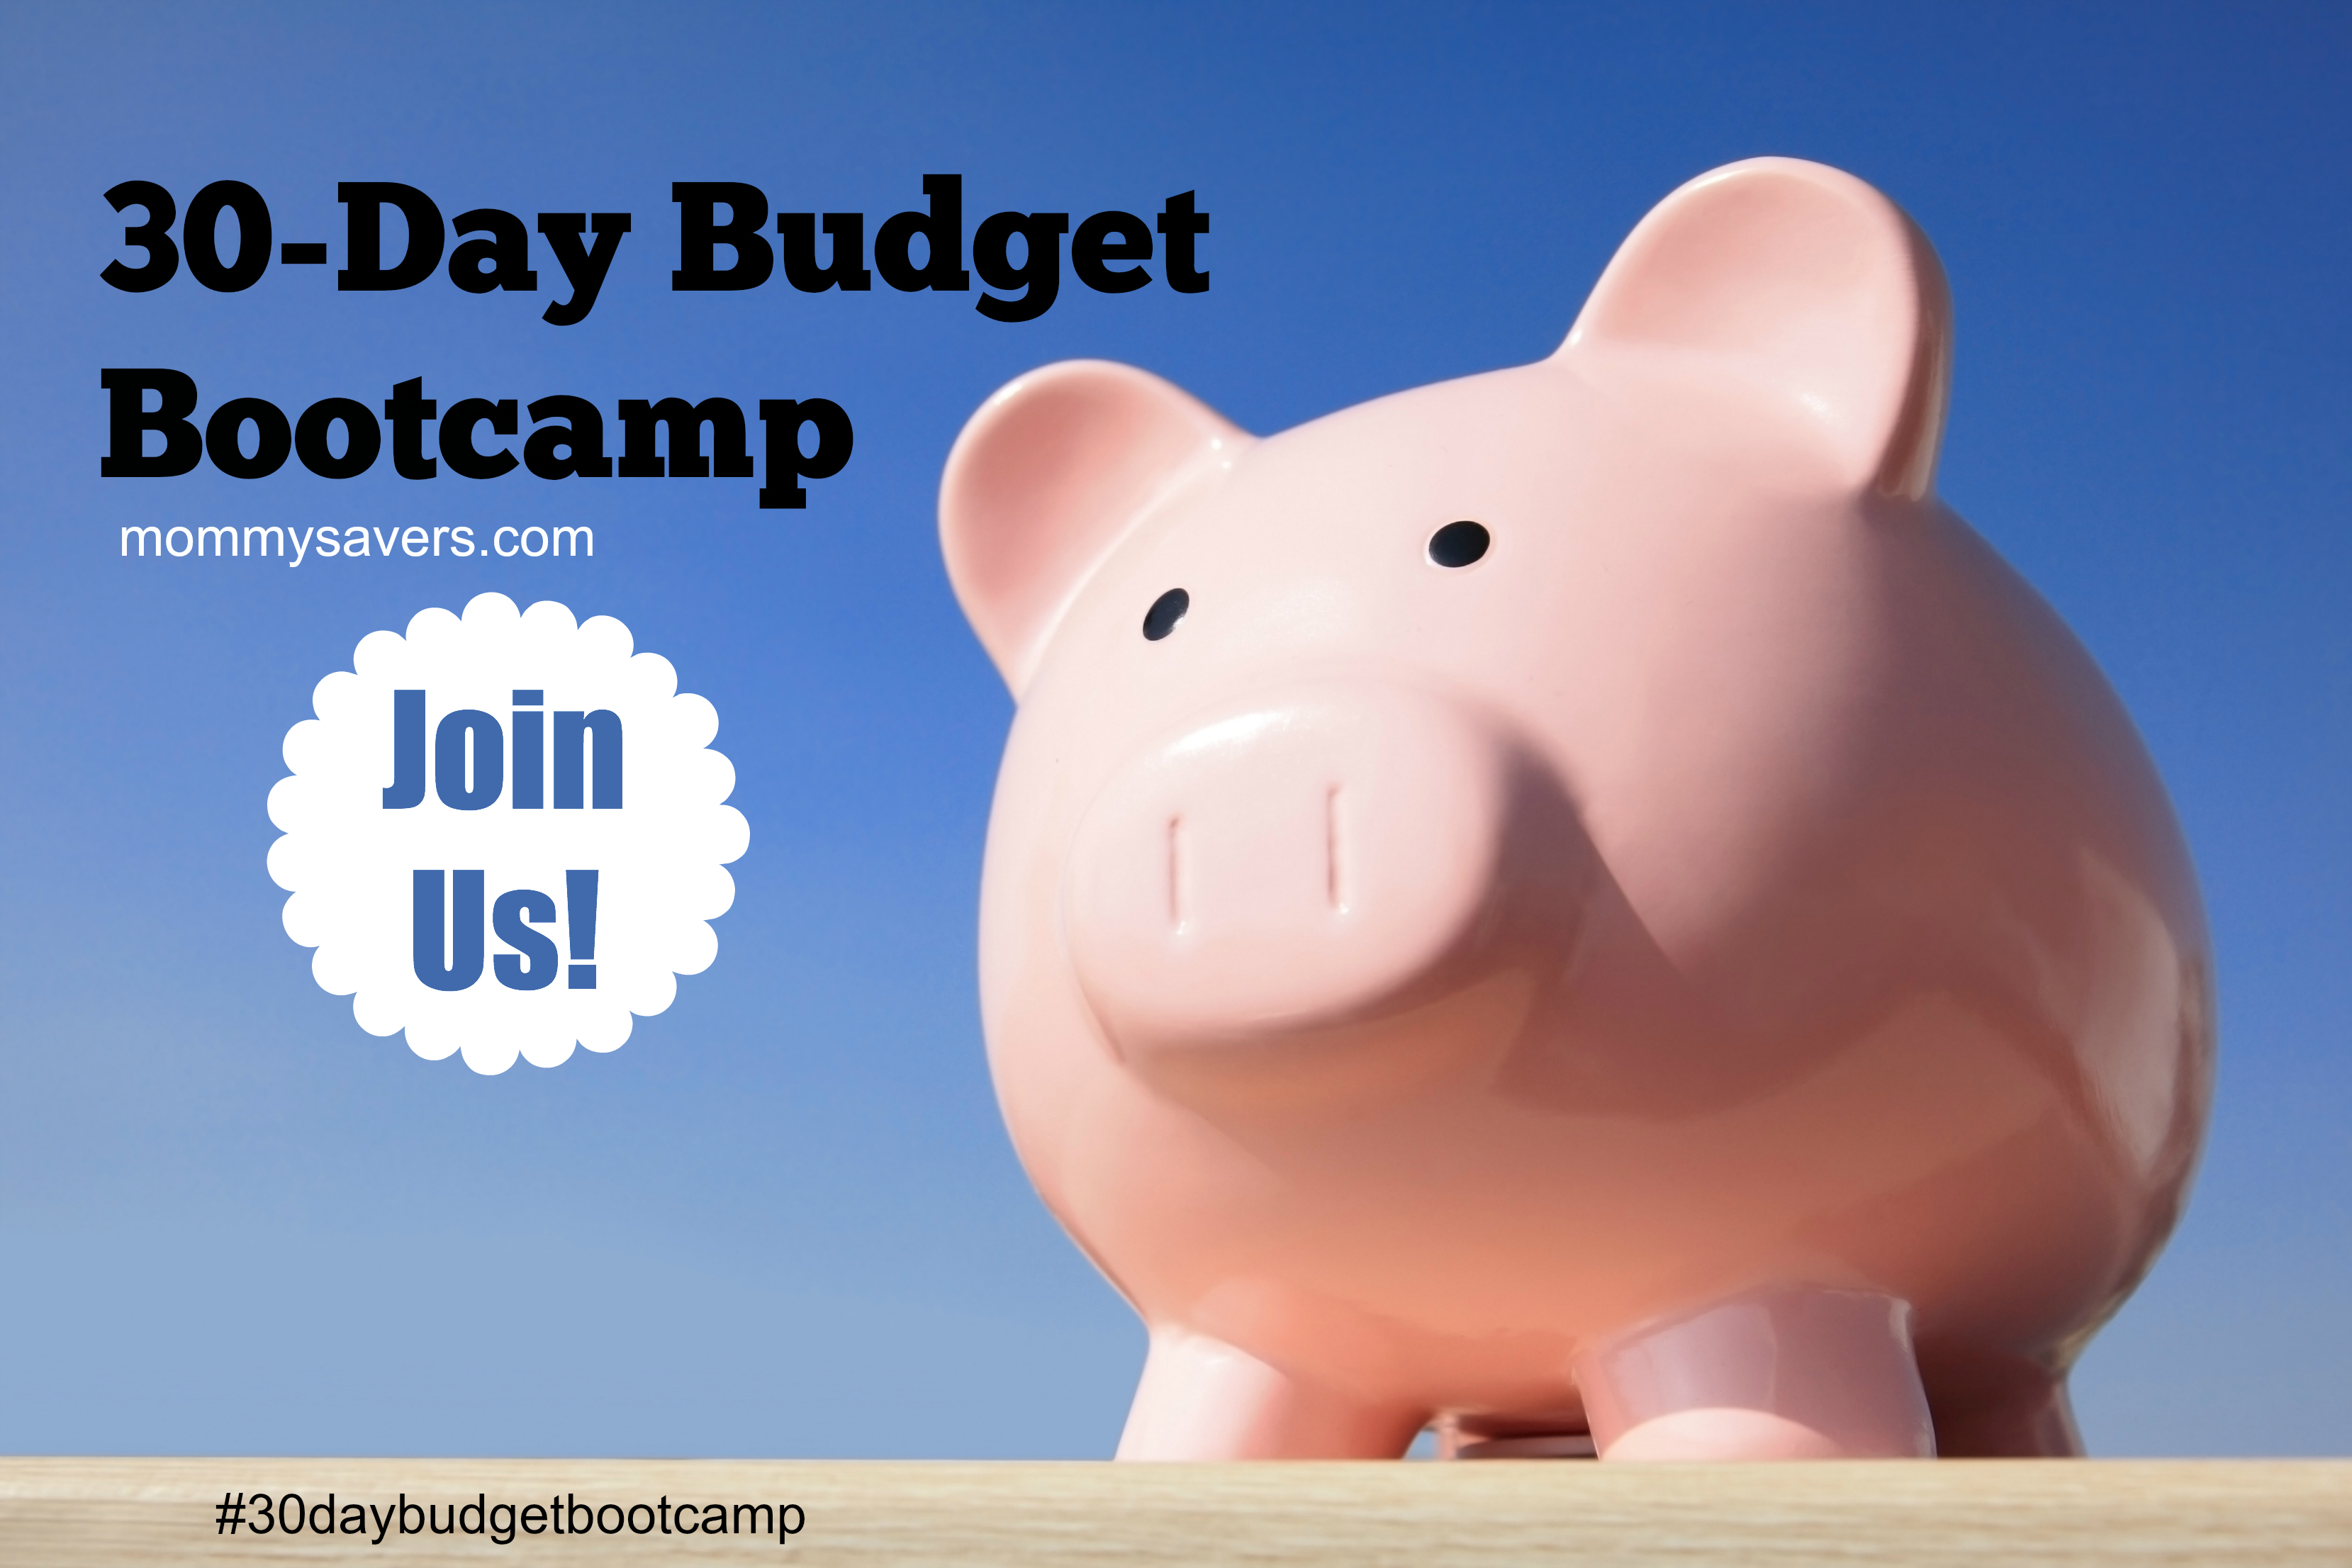 30-Day Budget Bootcamp Challenge